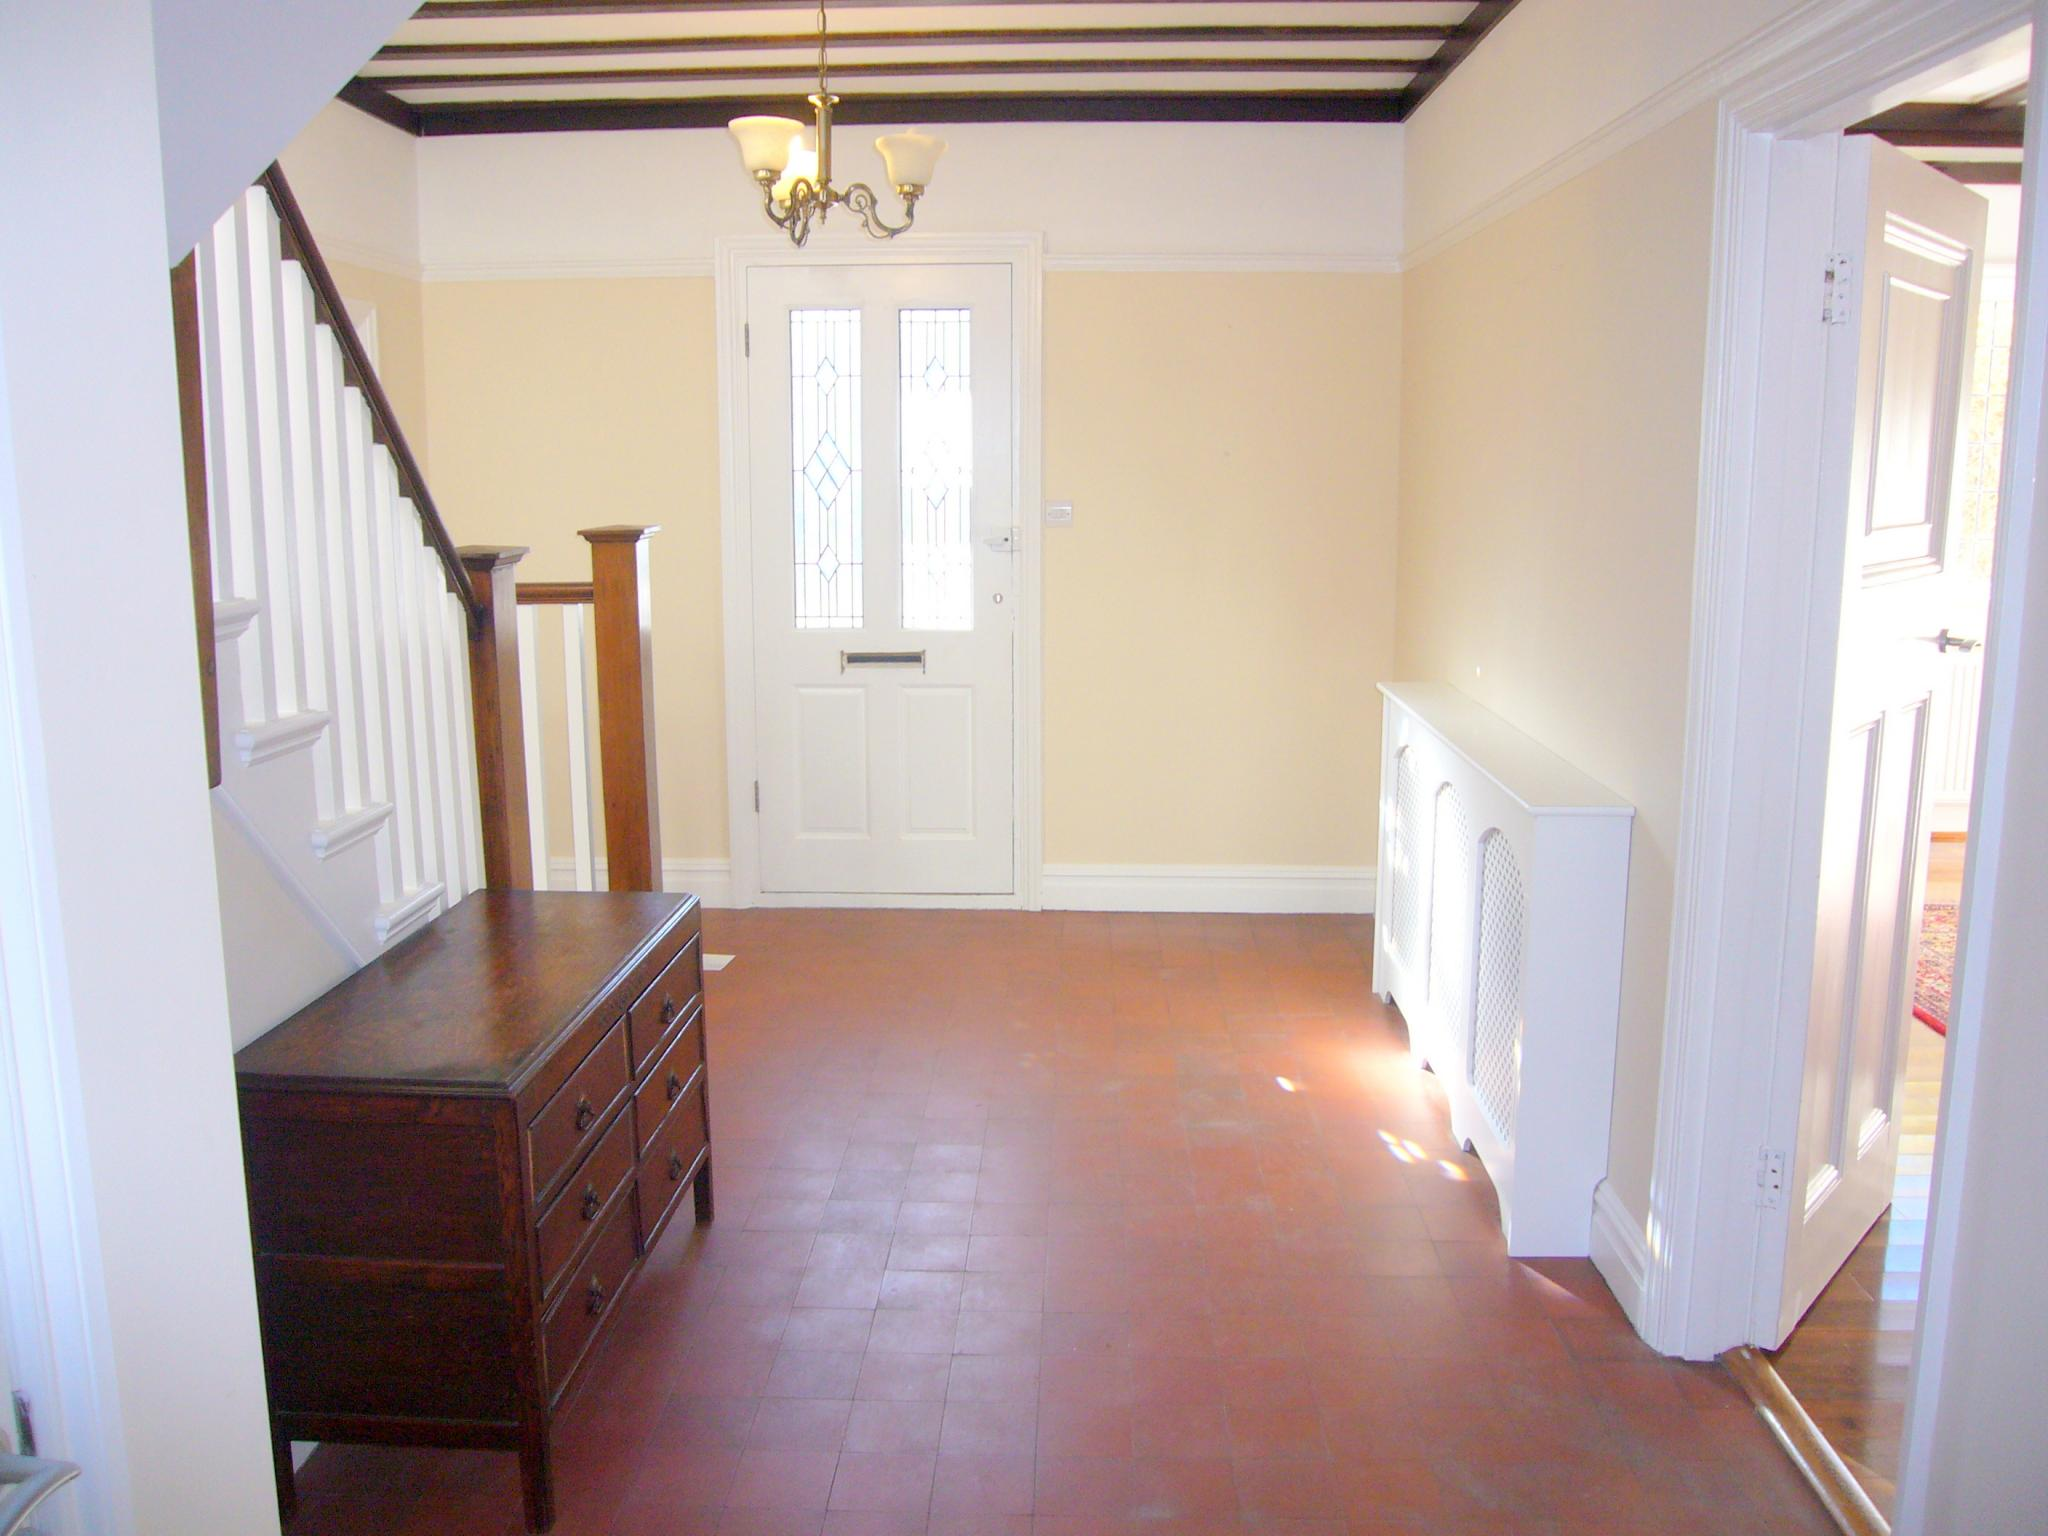 4 bedroom detached house Under Offer in Cheam - Photograph 2.